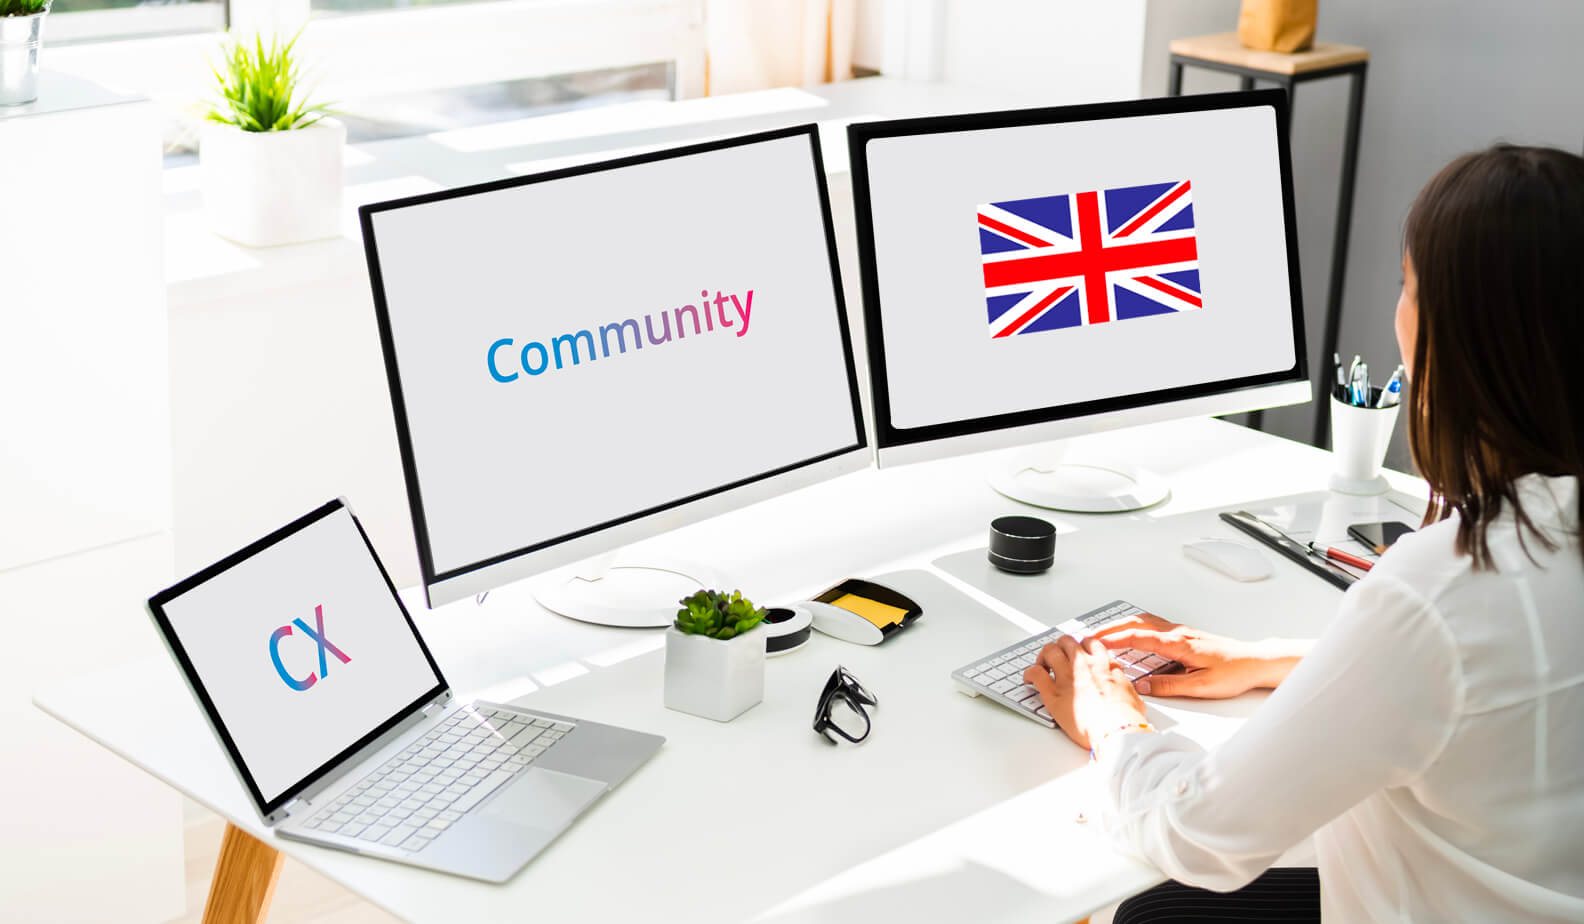 Do you Understand your British Customer Experience Expectations and How to Meet Them?